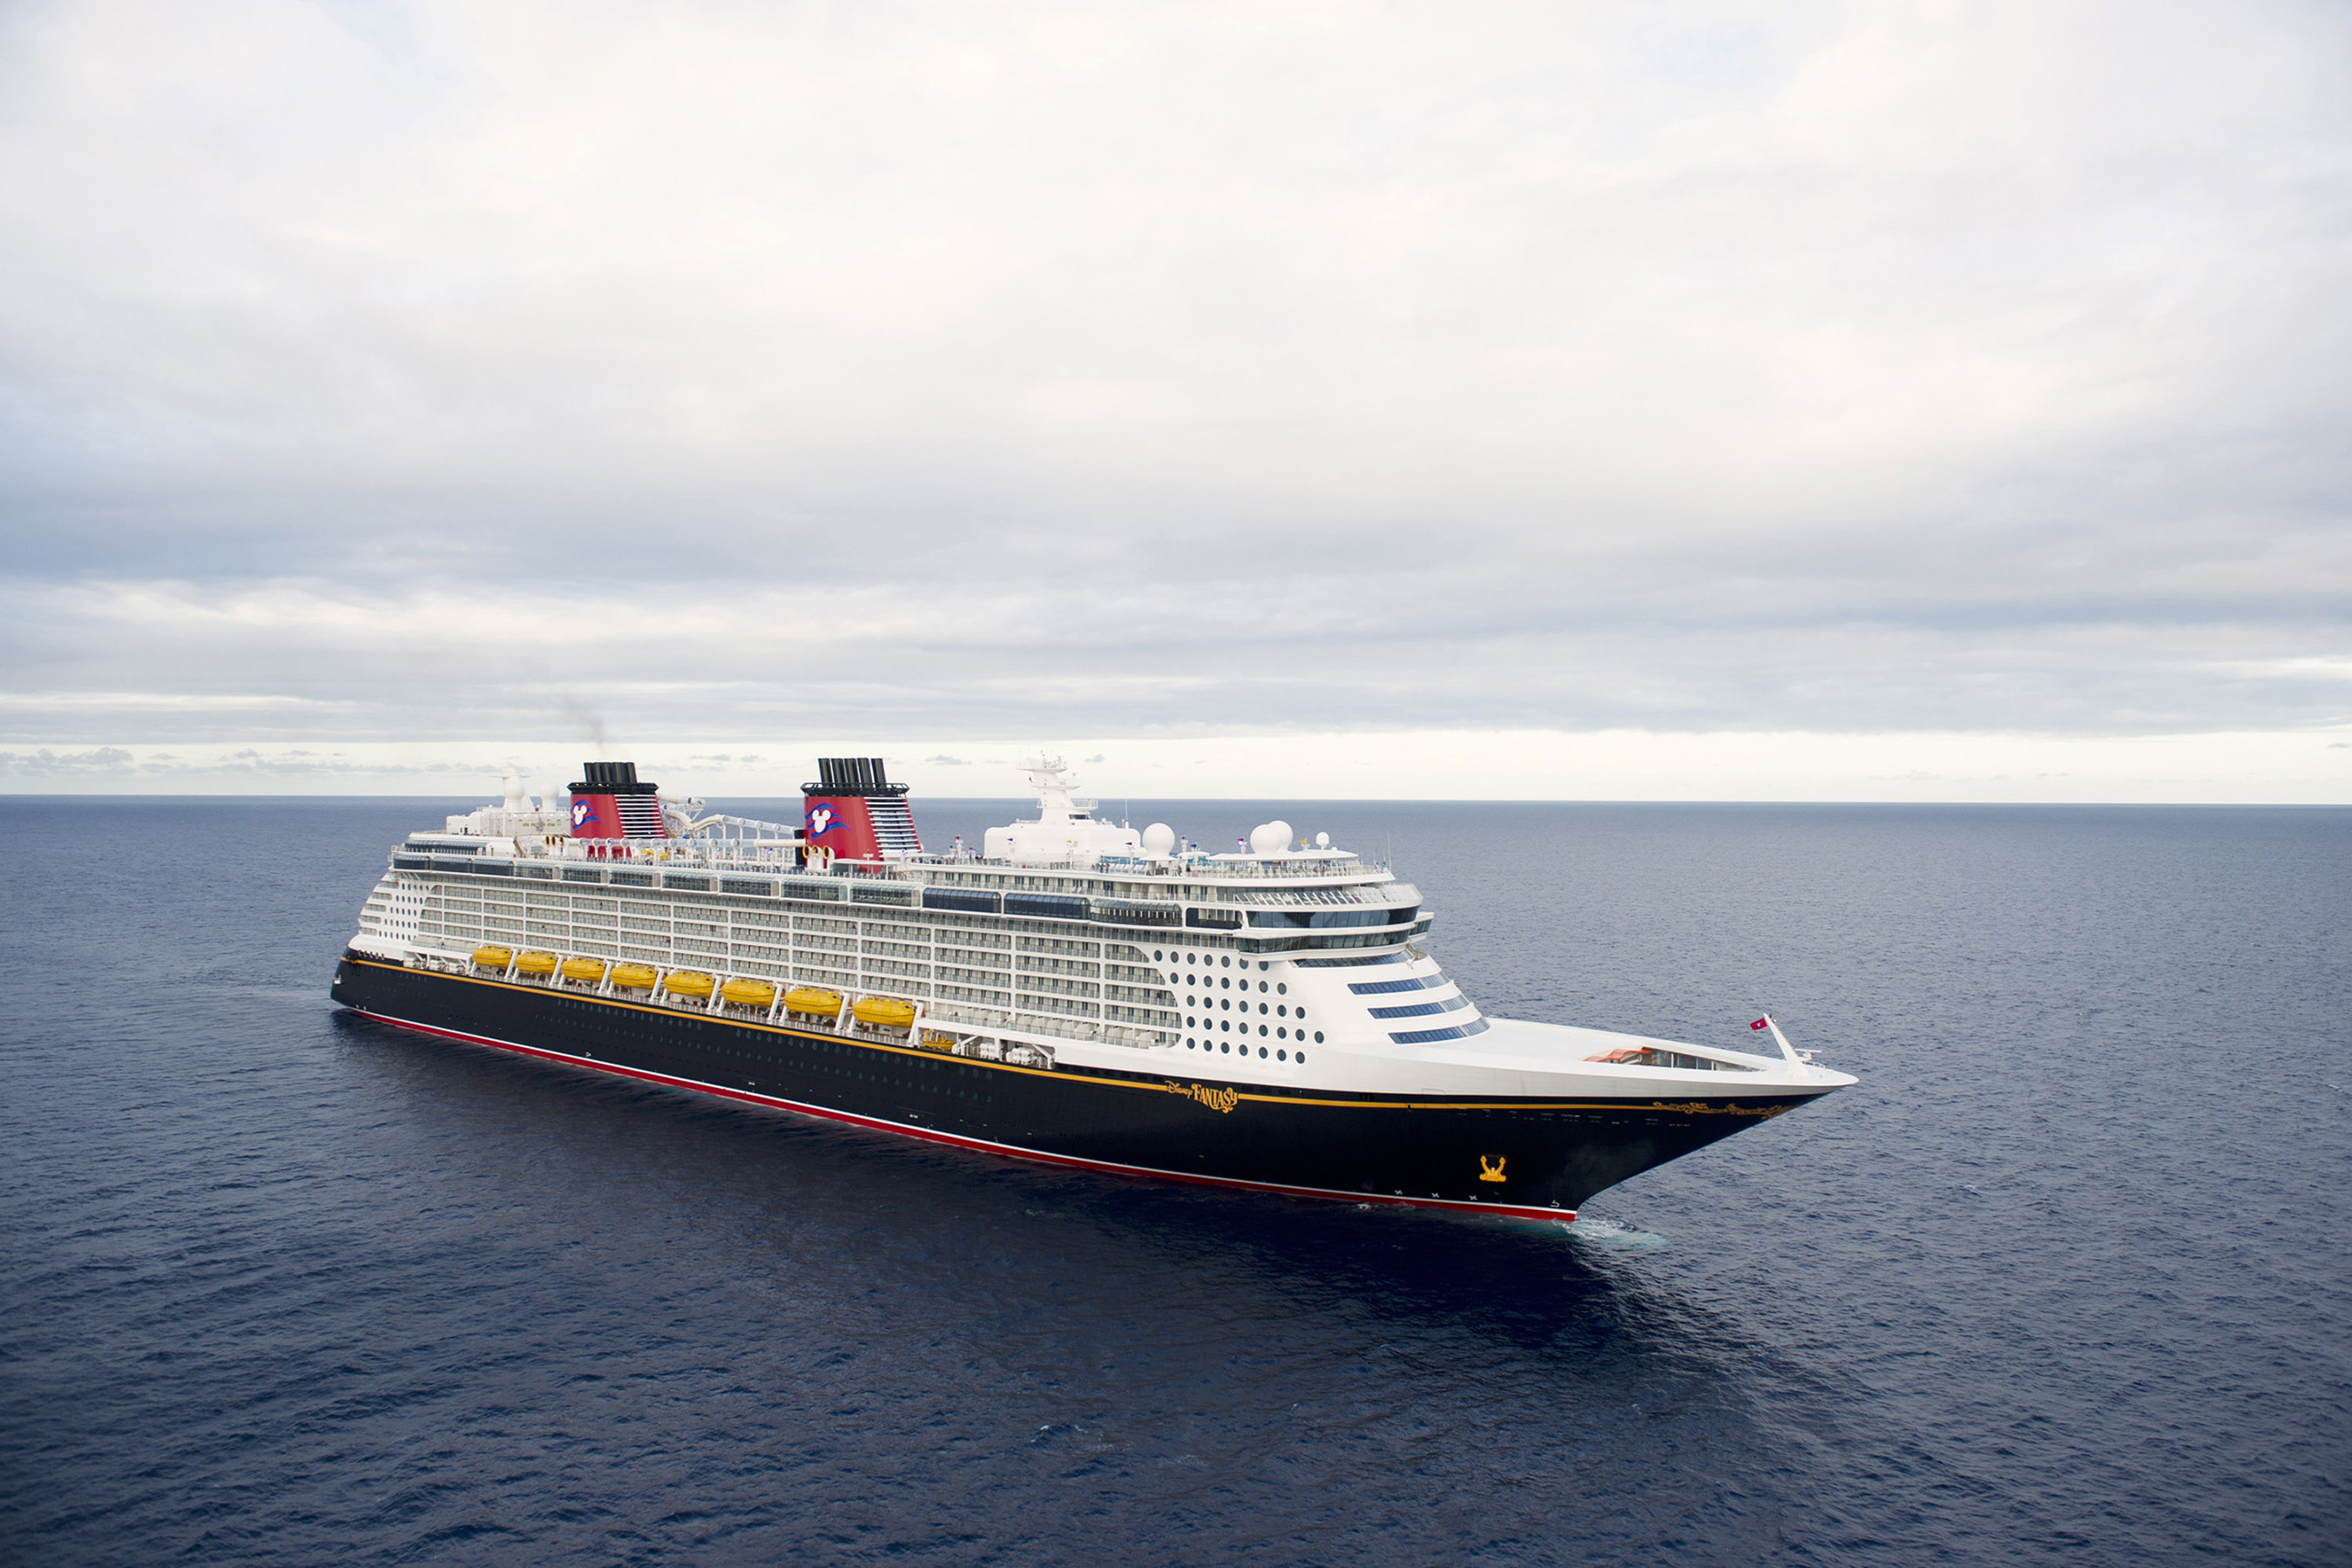 The Disney Fantasy continues the Disney Cruise Line tradition of blending the elegant grace of early 20th century transatlantic ocean liners with contemporary design to create one of the most stylish and spectacular cruise ships afloat. The Disney Fantasy offers modern features, new innovations and unmistakable Disney touches.